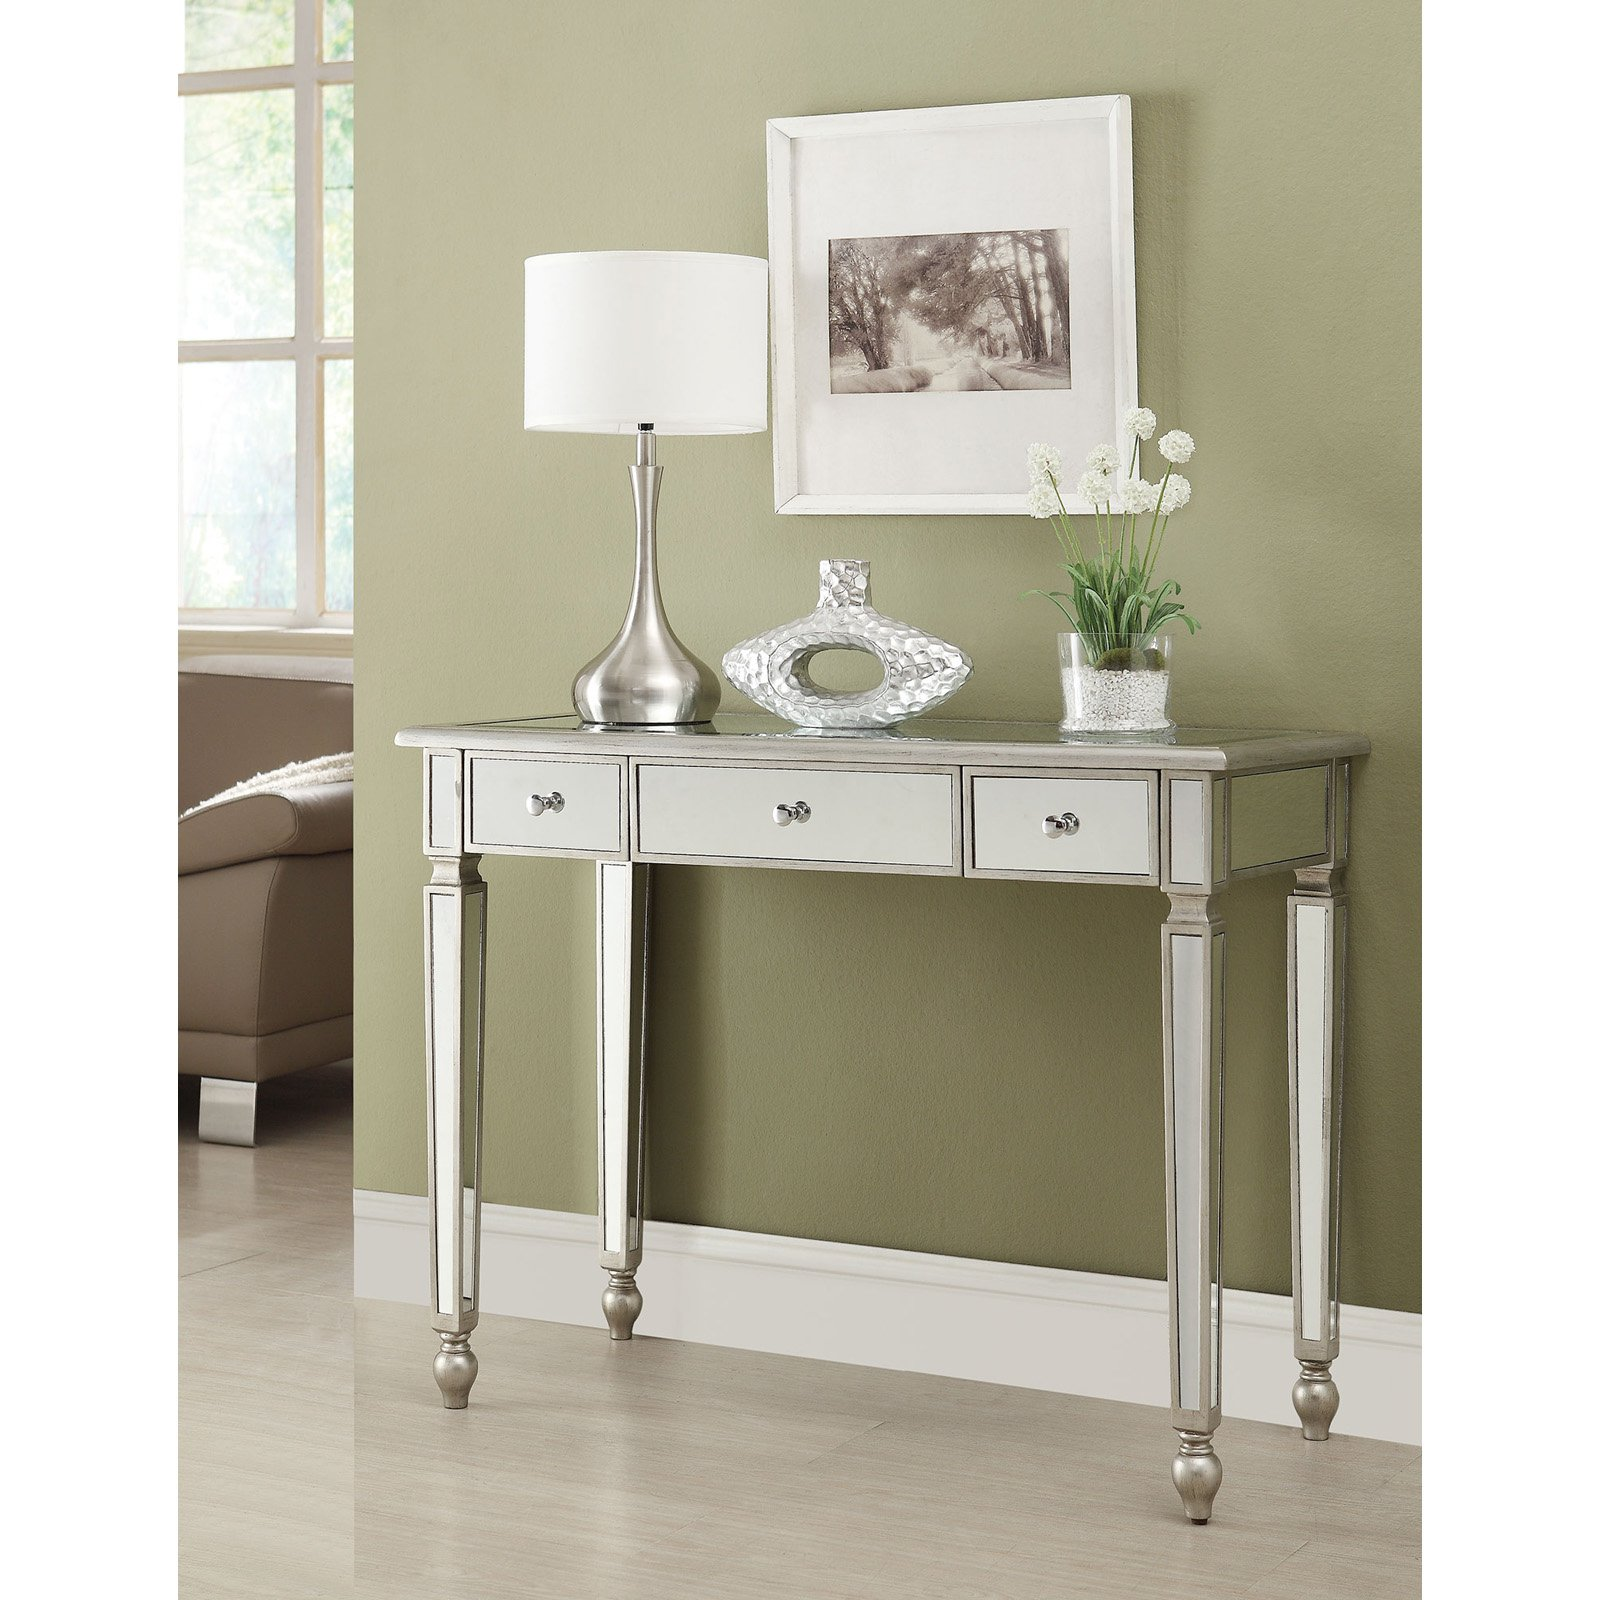 Coaster Furniture Antique Silver Mirrored Console Table